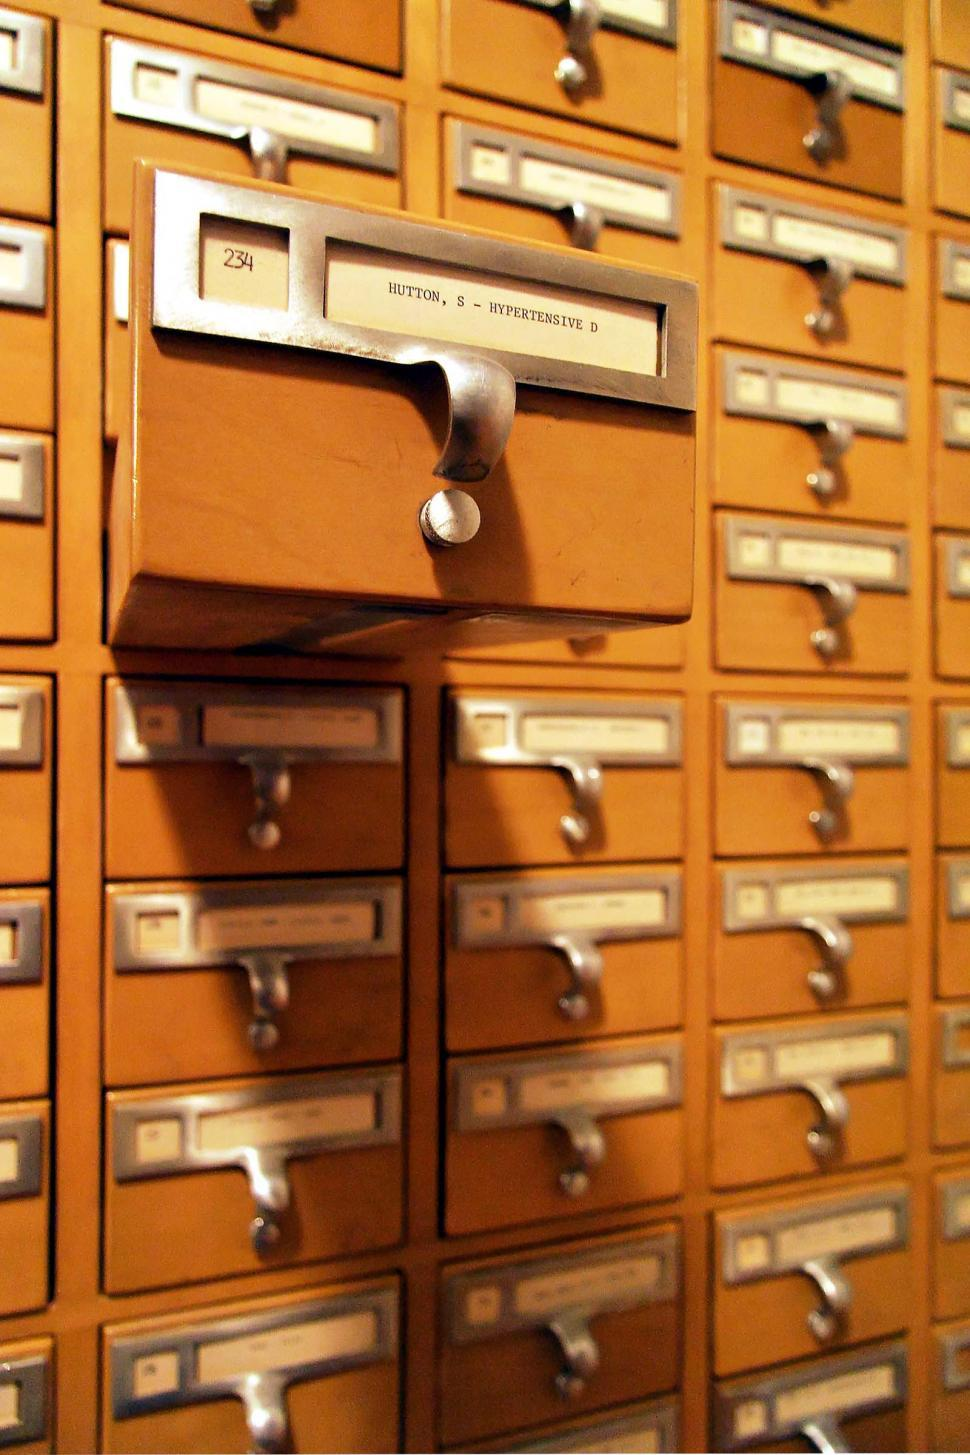 Download Free Stock Photo of card catalogue catalog drawers organization organized labels index cards handles pulls library furniture information hypertensive